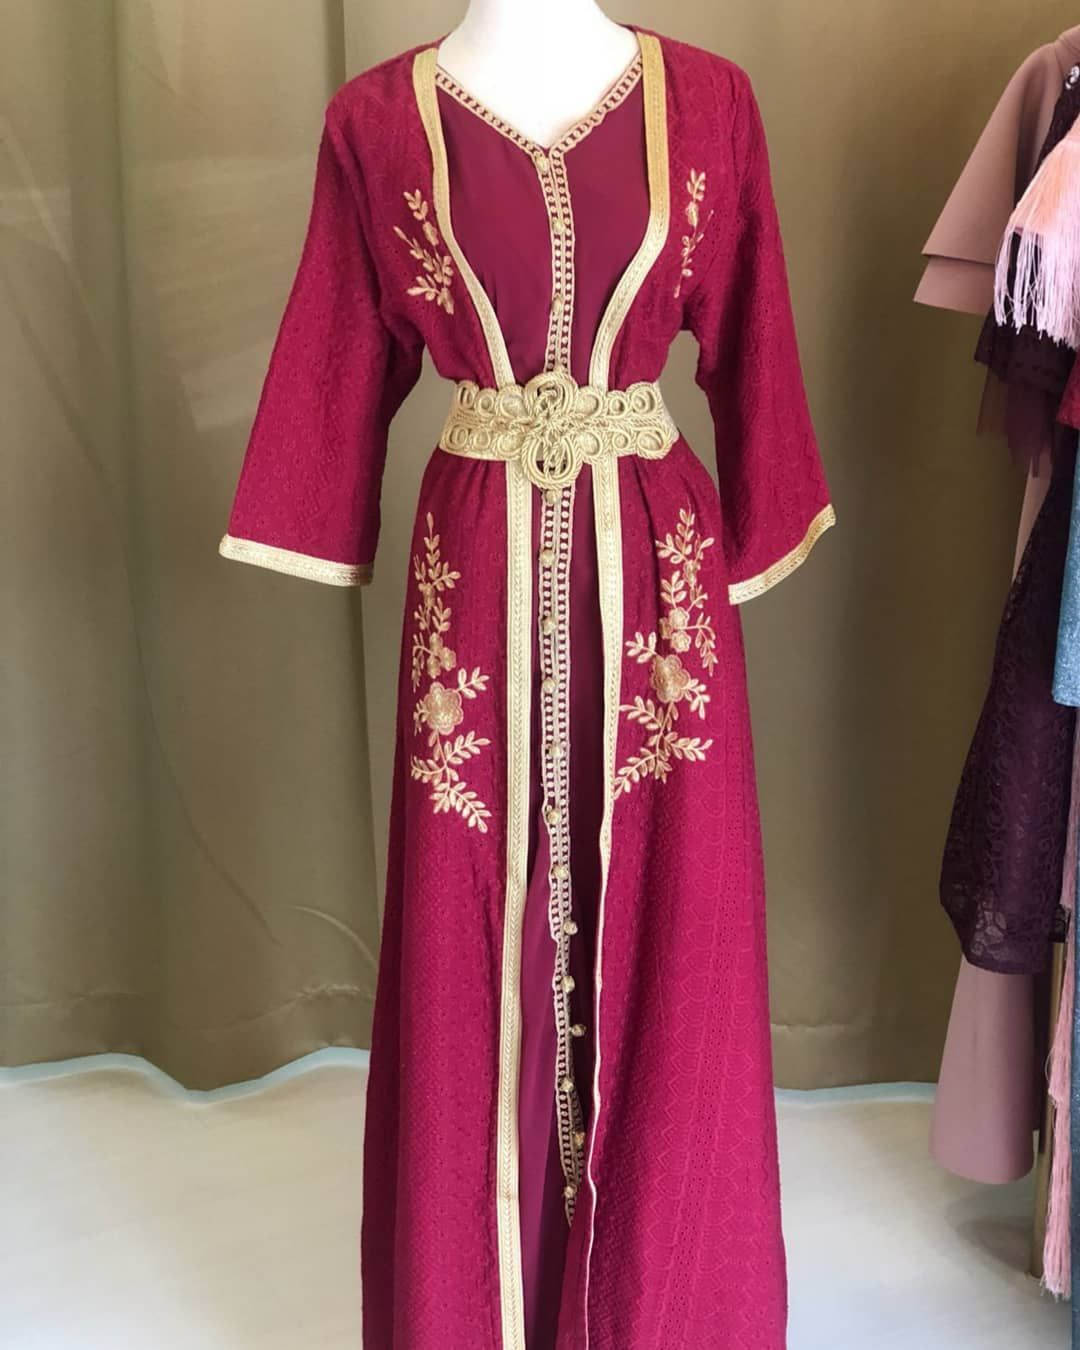 Forever I Love Moroccan Style In Jalabyat And Some Occasions A Maron Colour With Gold Details Hand Made Piece Available In Alyaa To Clothes Fashion Kimono Top